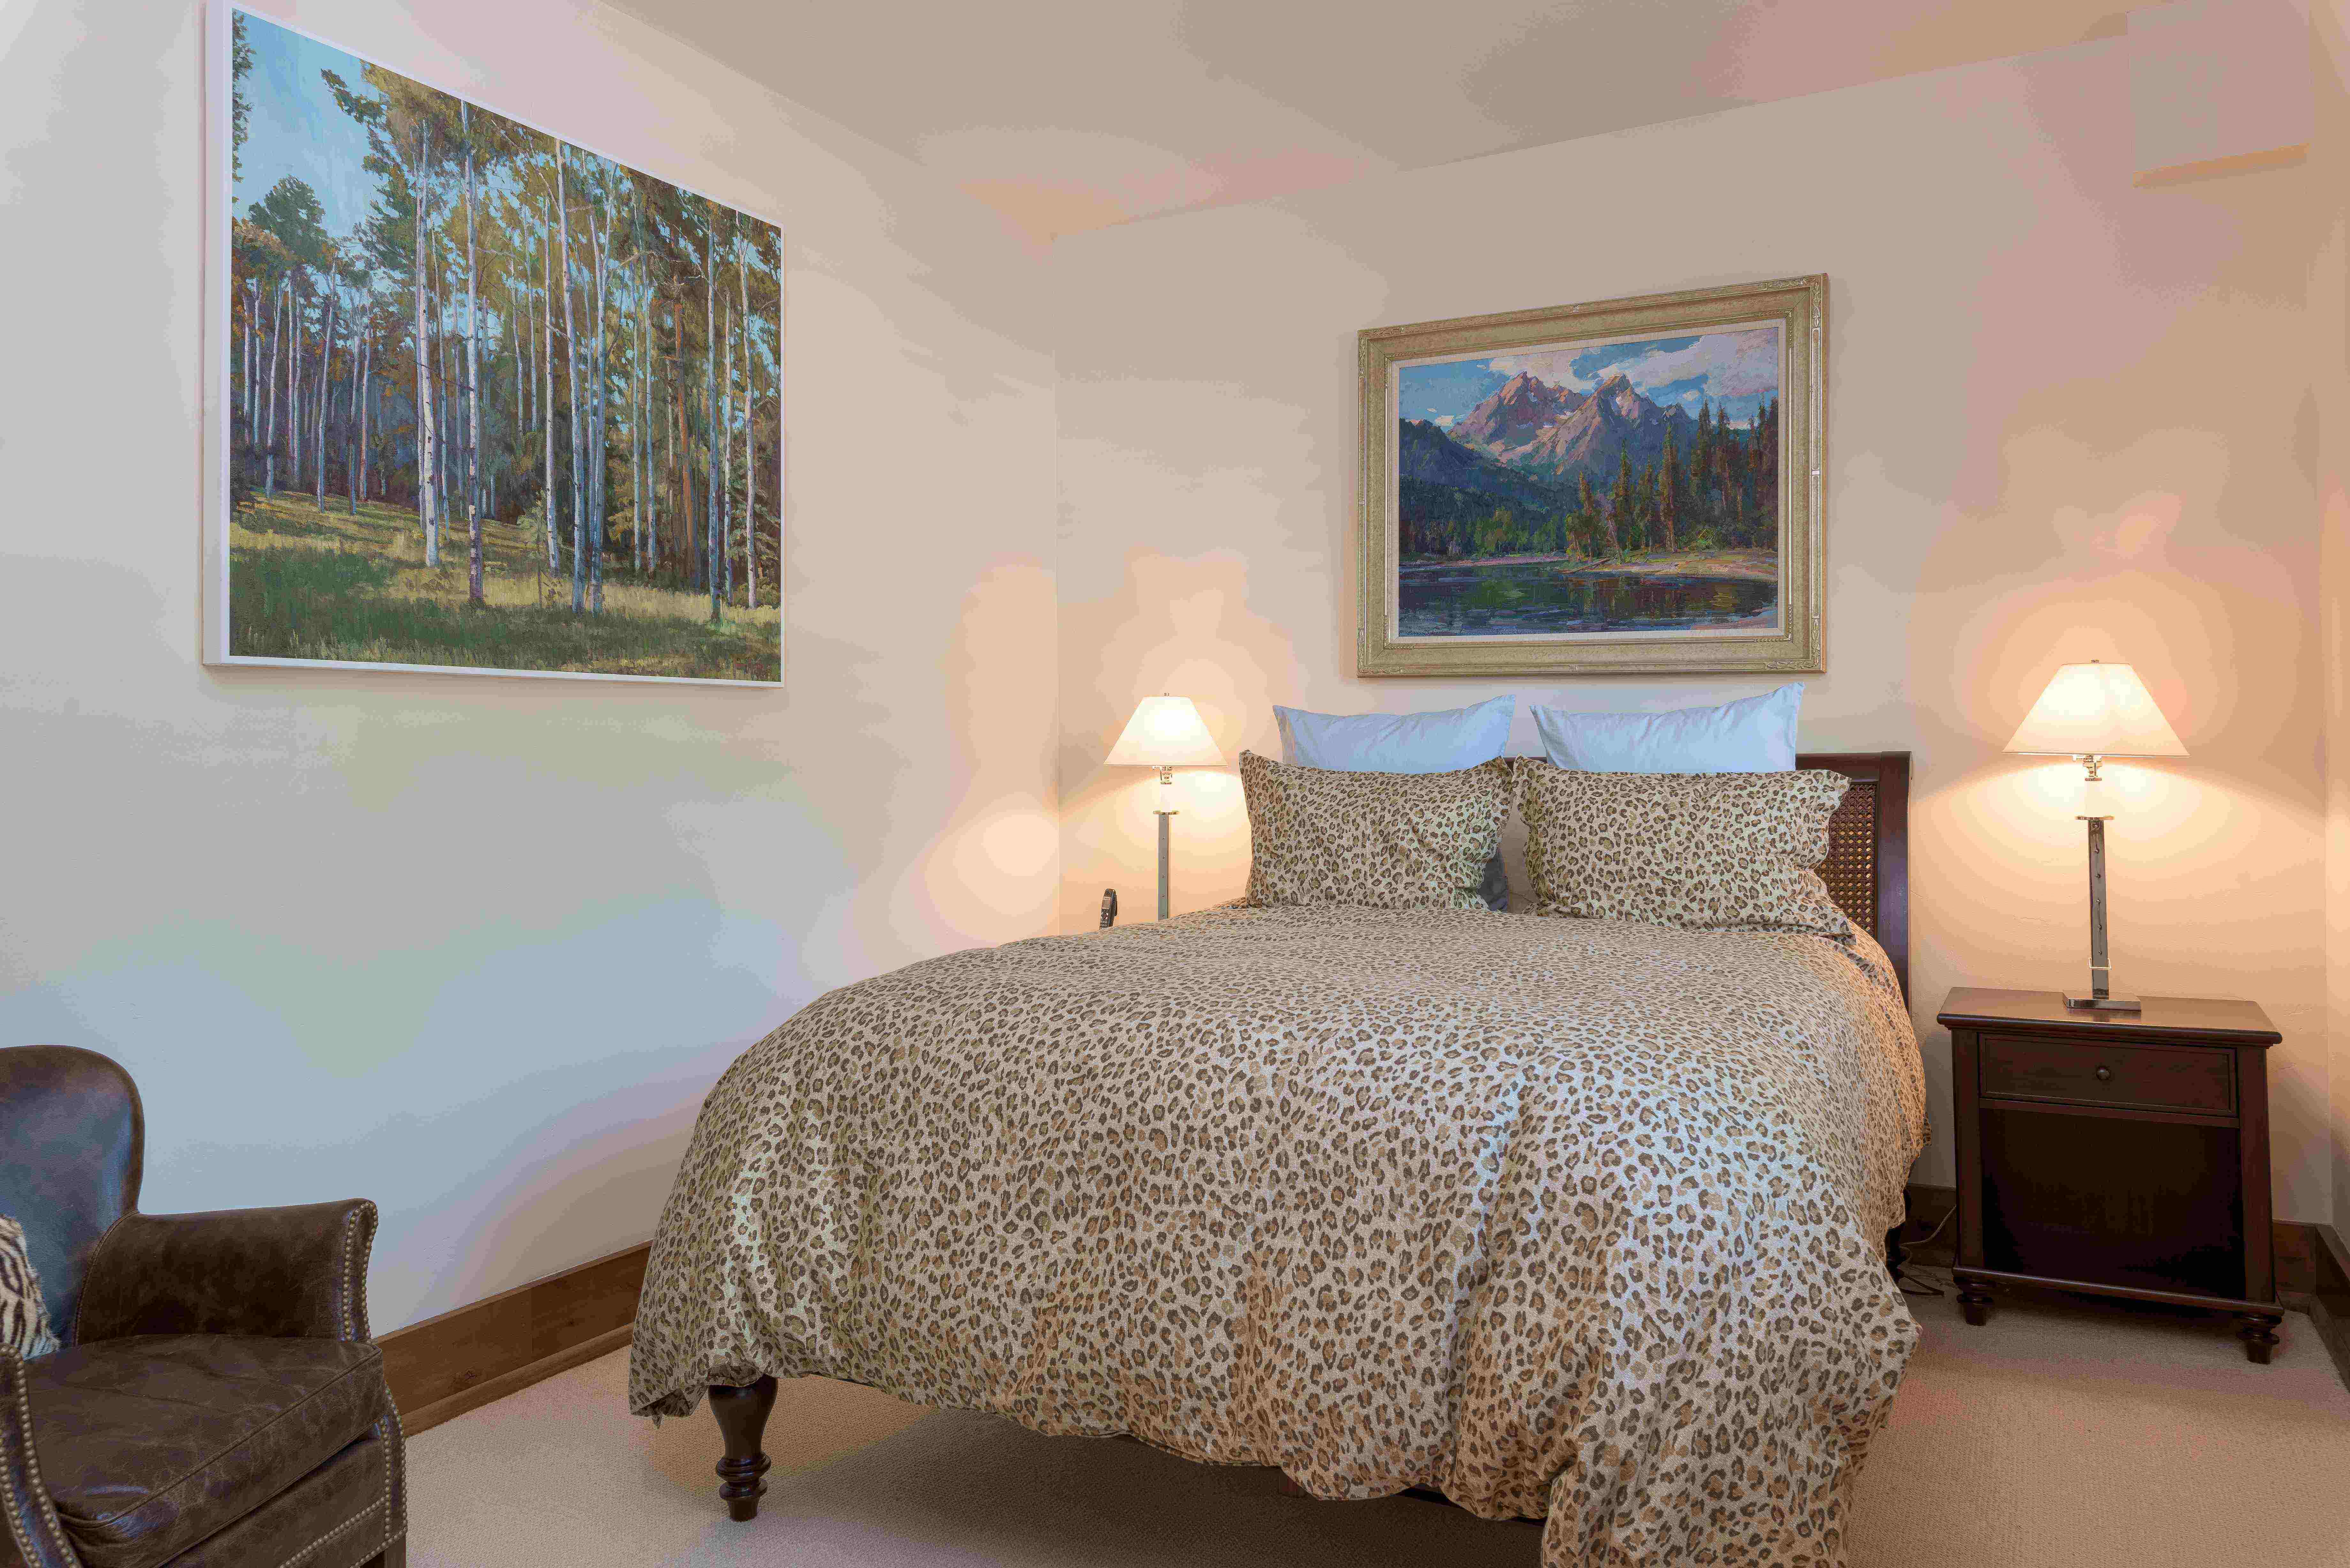 Additional photo for property listing at First and First Condo 100 N 1st Ave, Unit C Ketchum, Idaho 83340 Estados Unidos